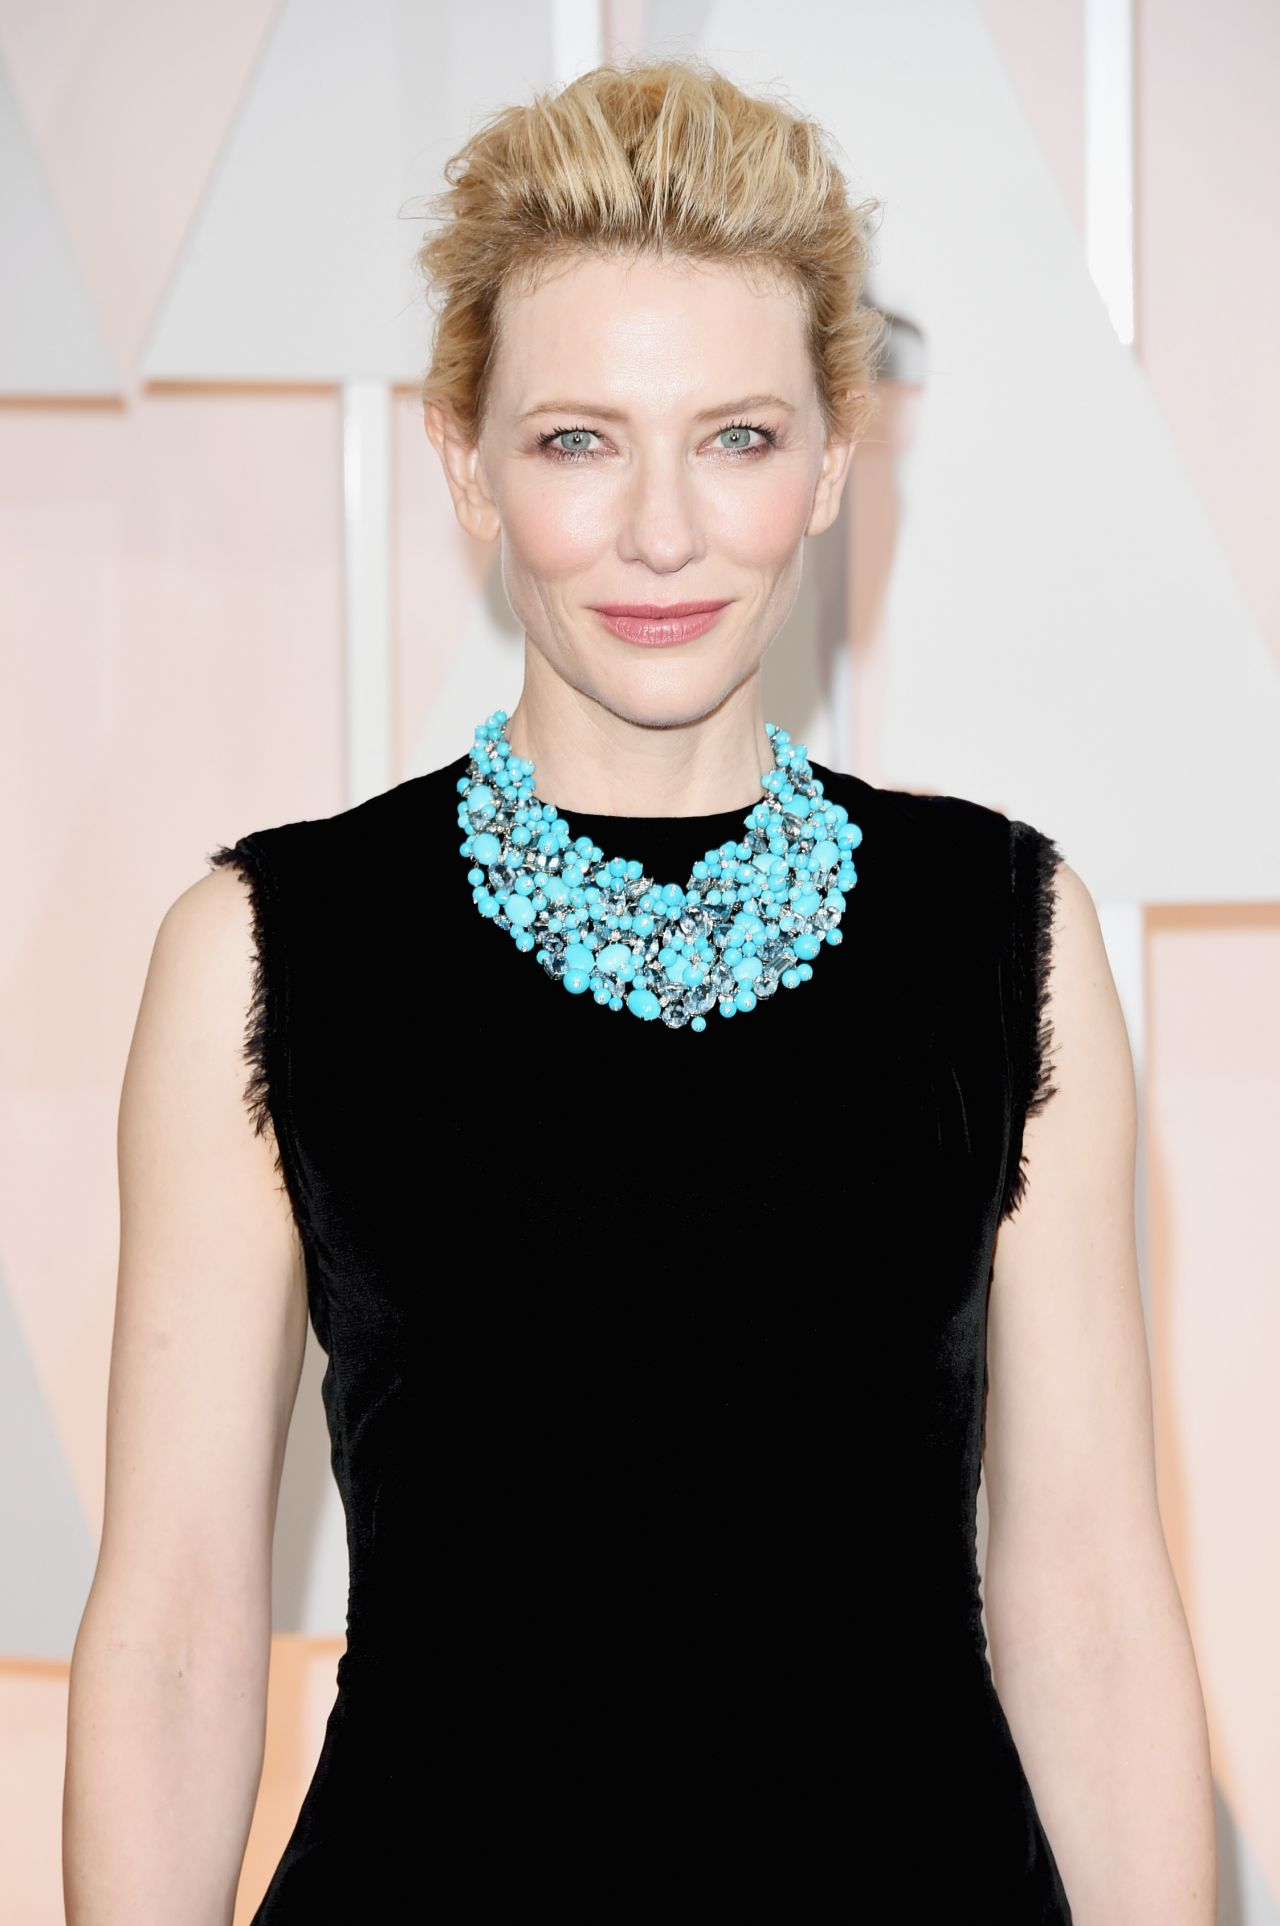 Cate Blanchett – 2015 Oscars Red Carpet in Hollywood кейт бланшетт